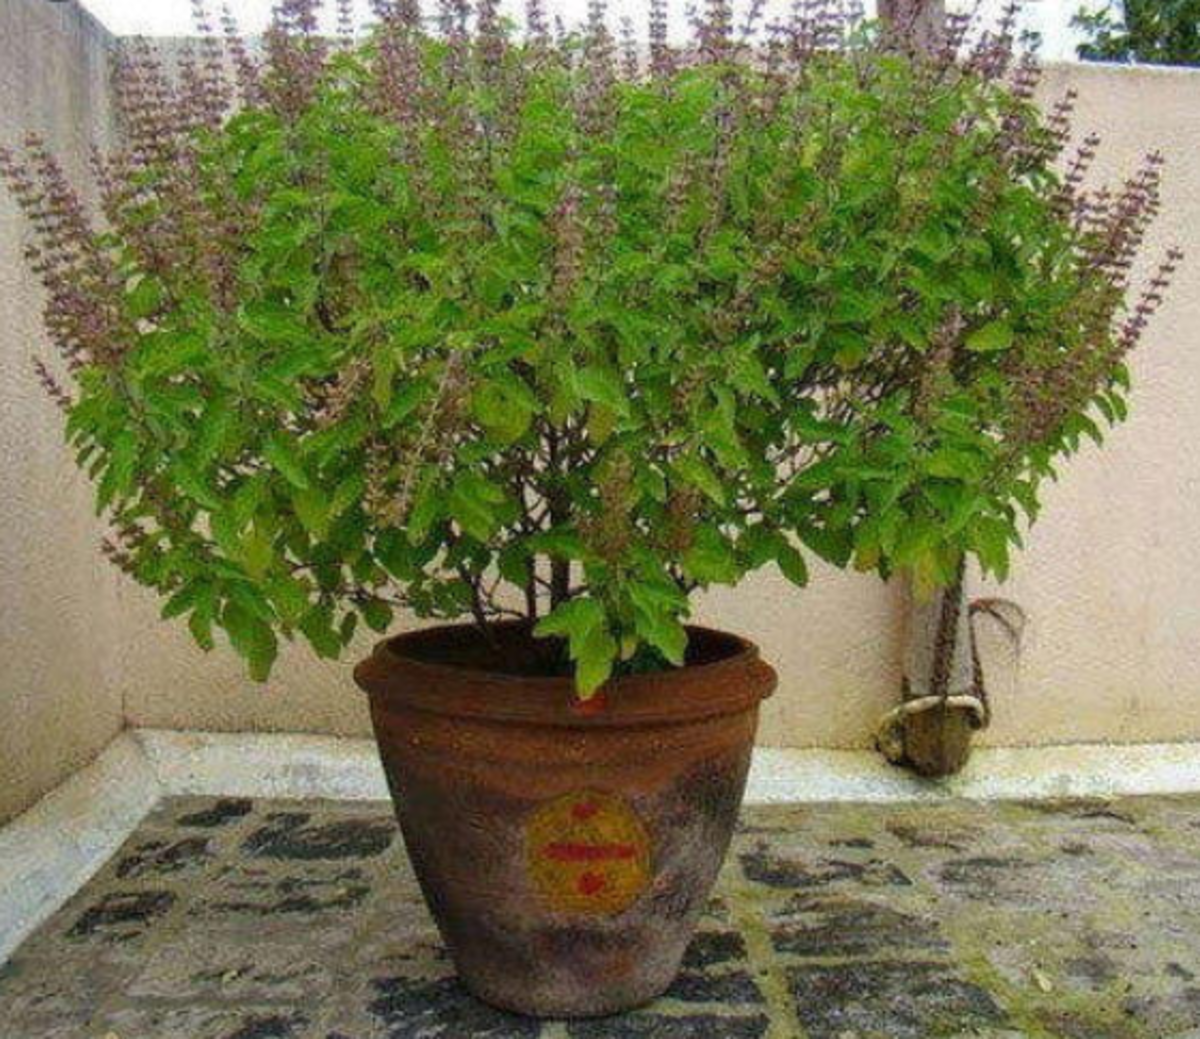 Typical Holy Basil Plant in an Indian Household